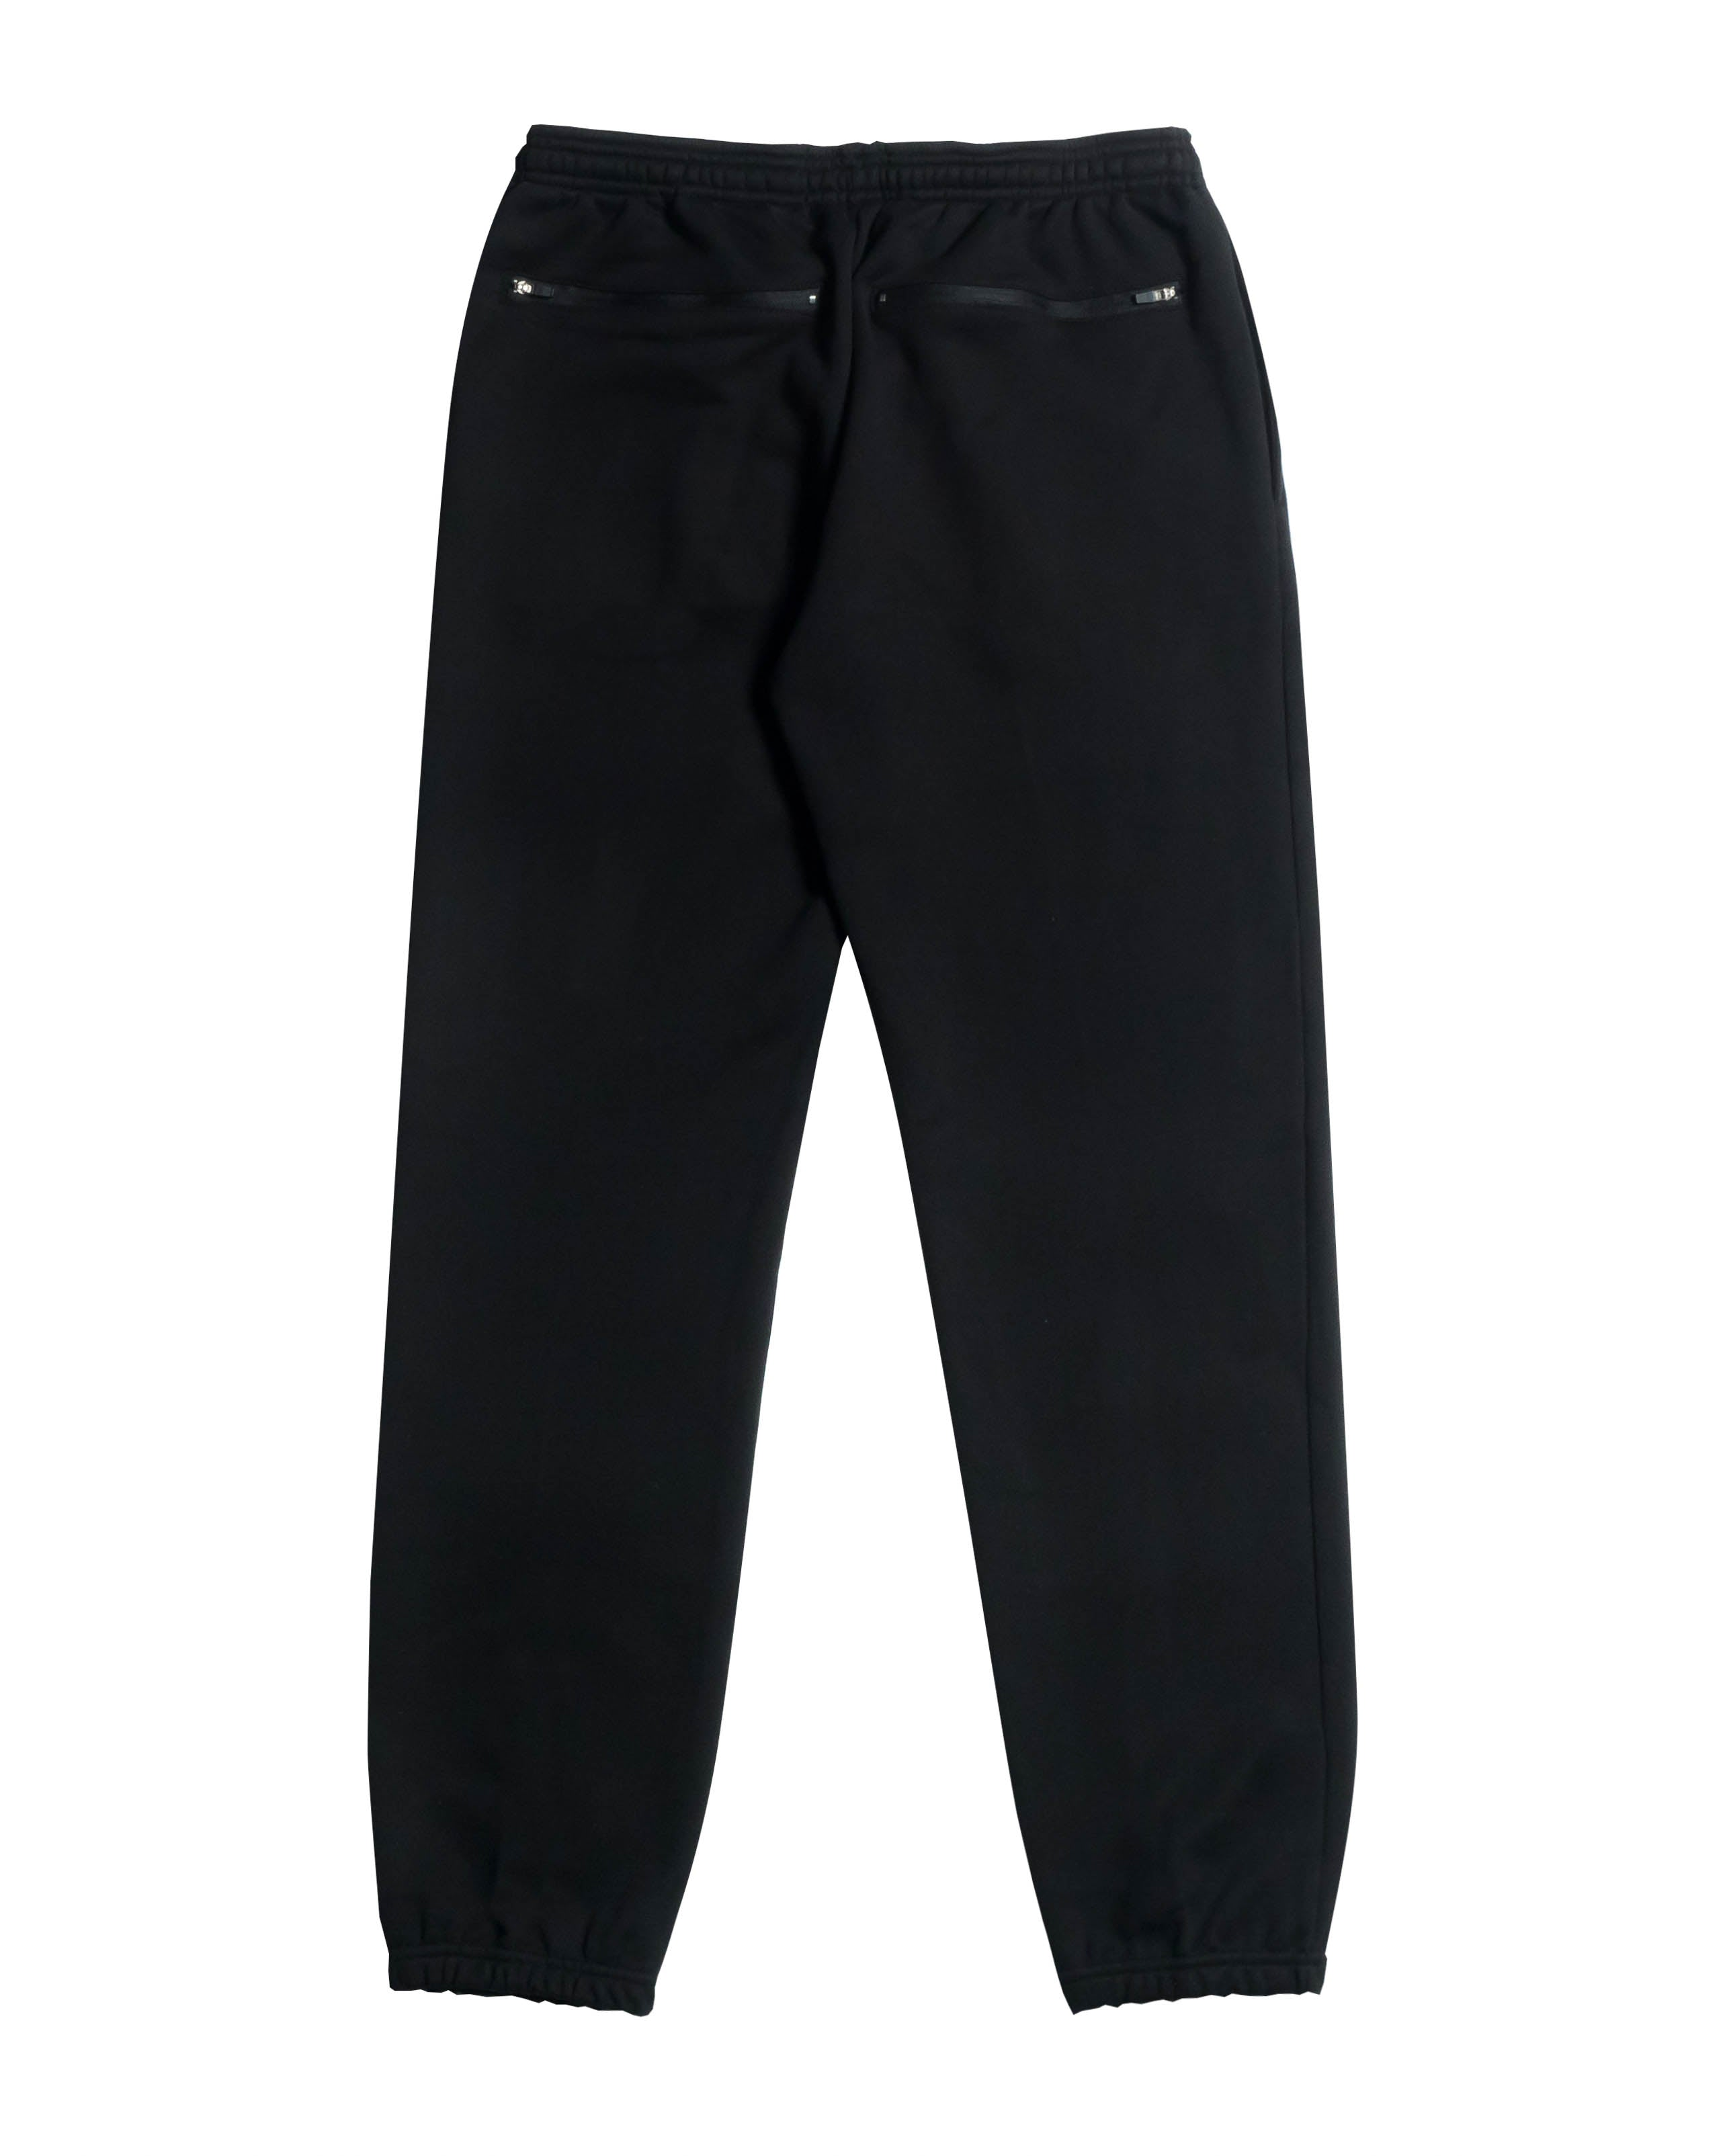 DIAGRAM SWEATPANT - BLACK / RED